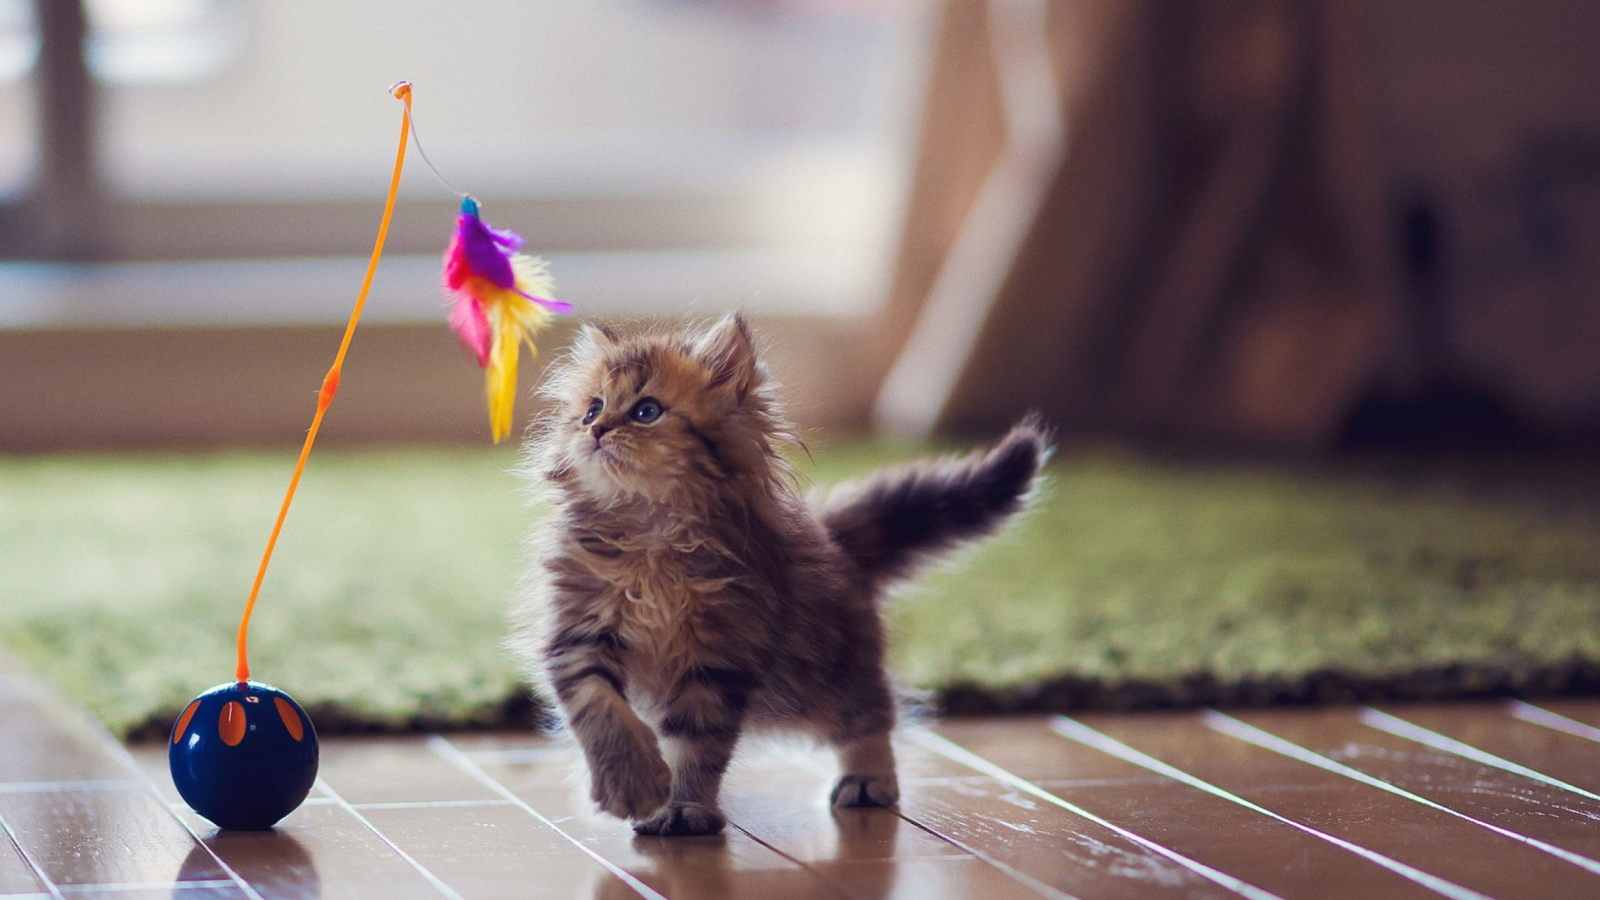 Kitten And Feather screenshot #1 1600x900